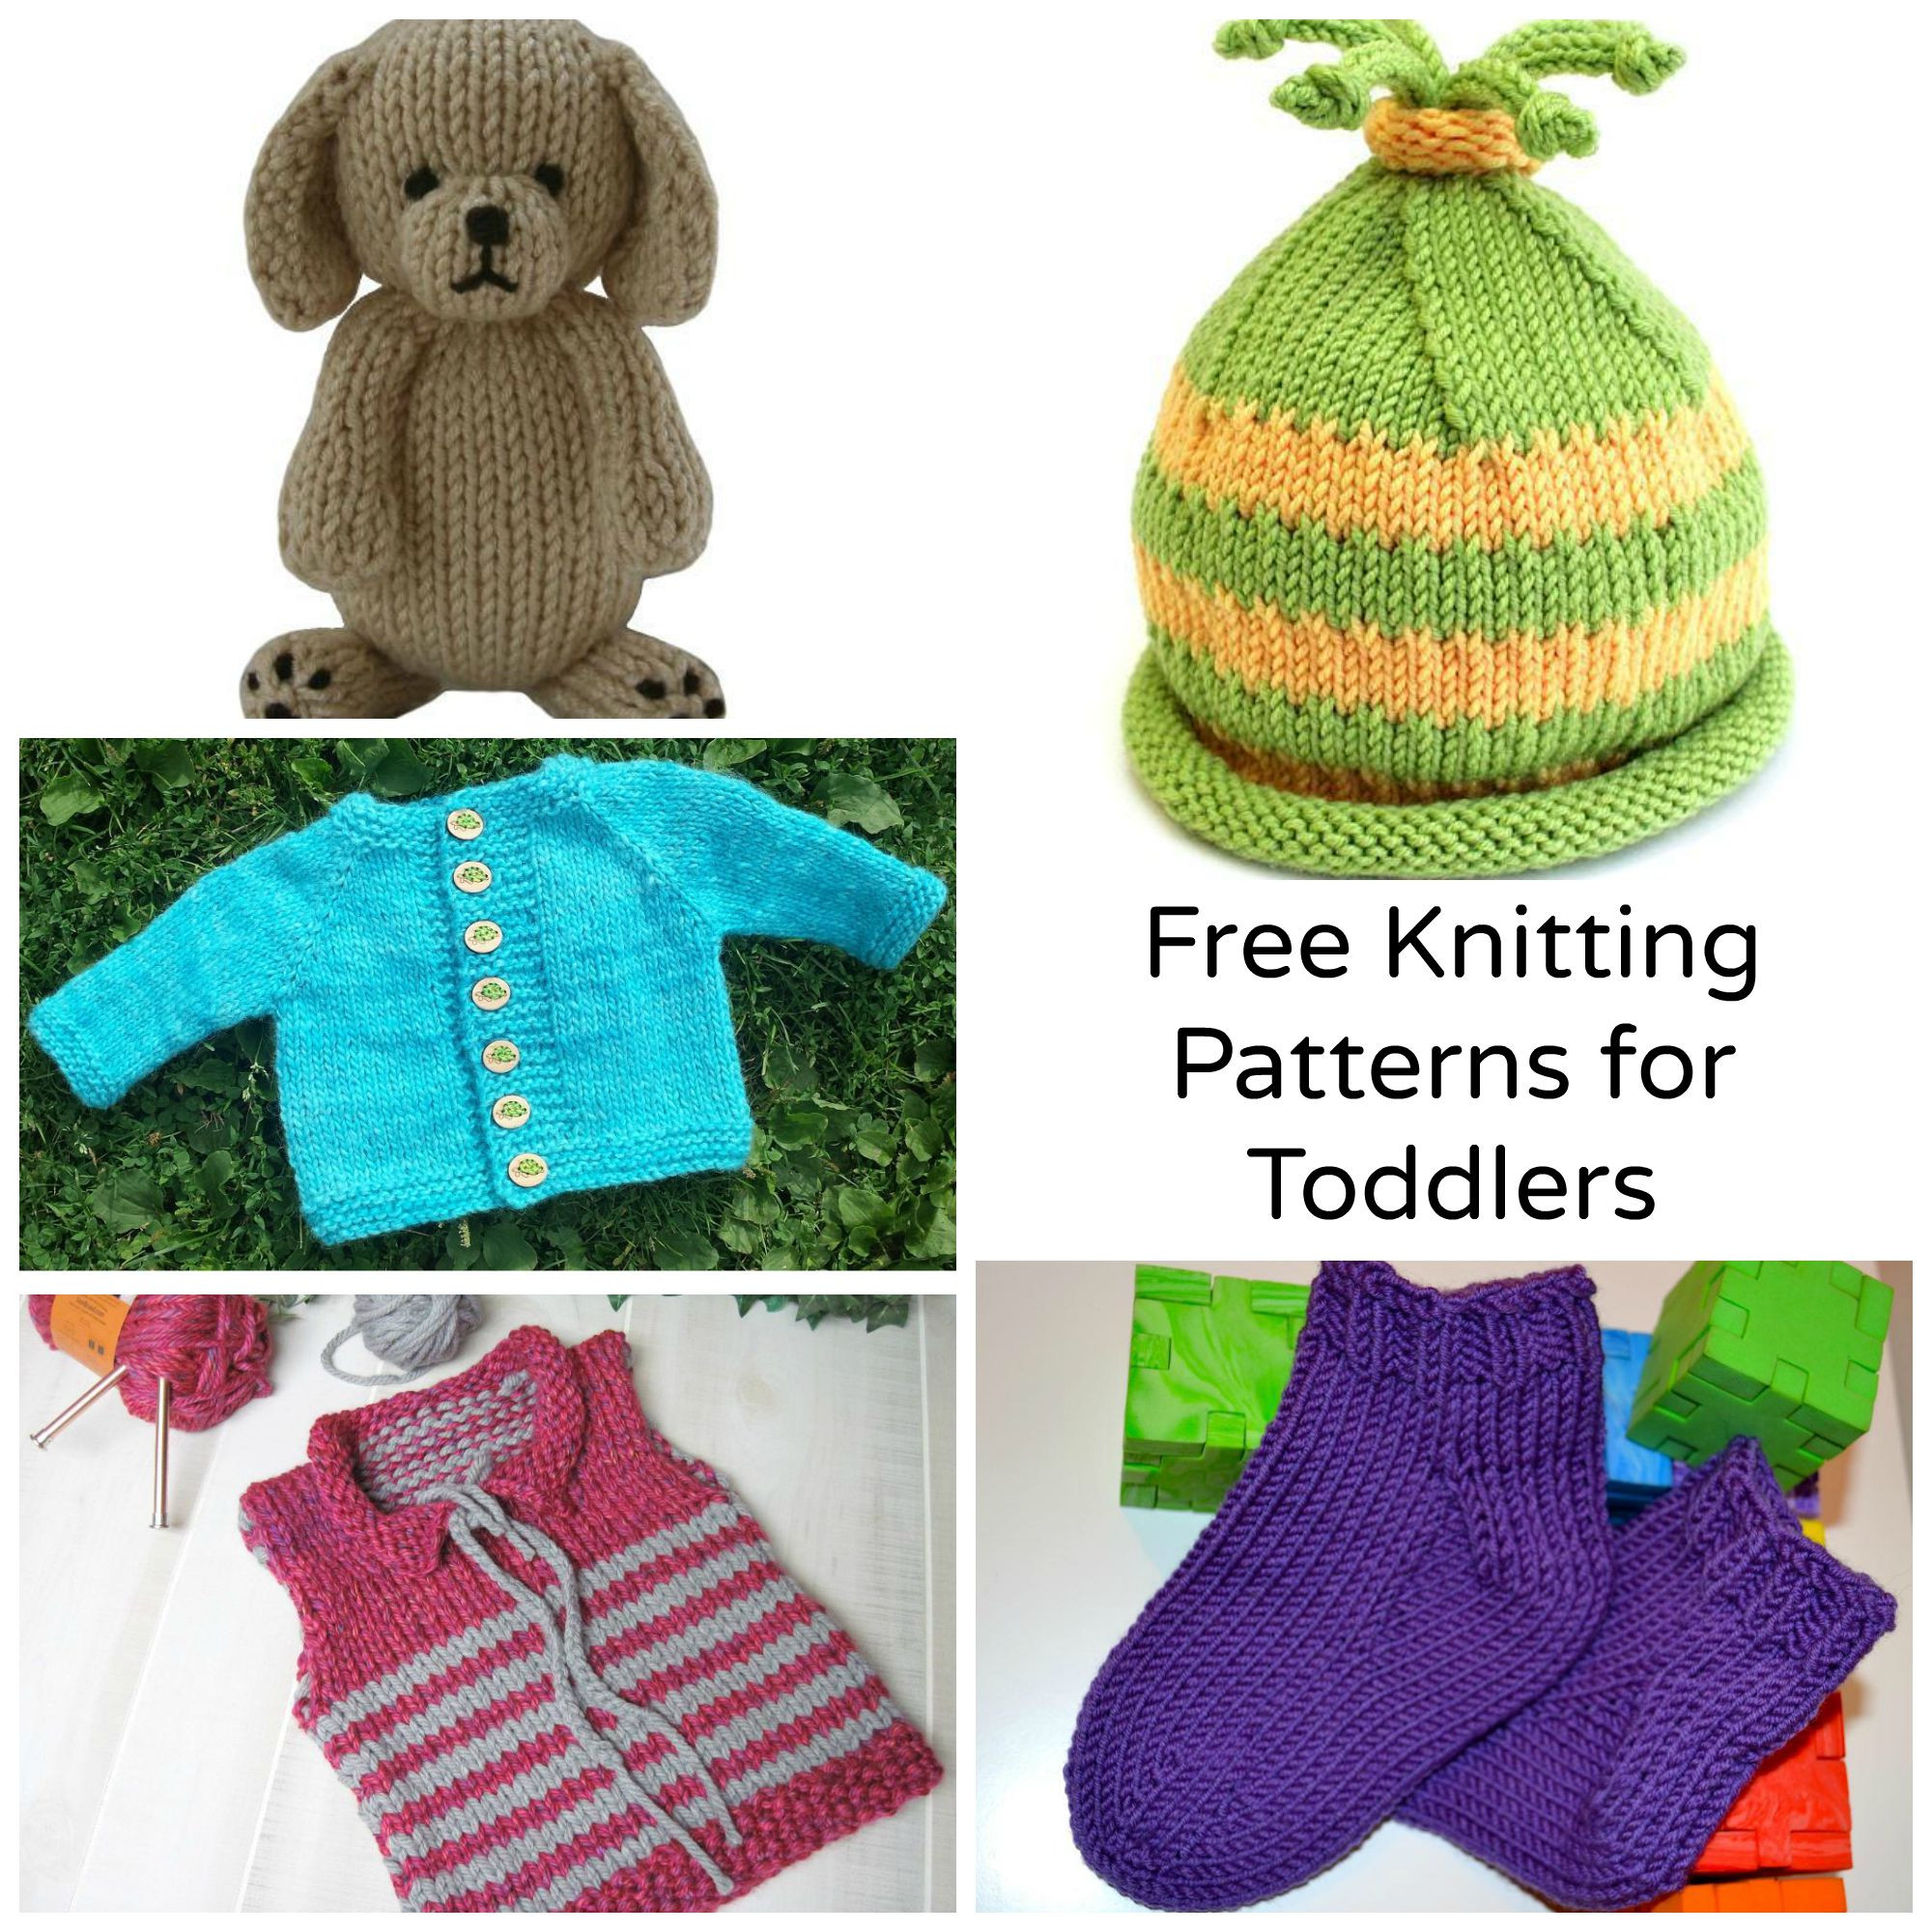 Knitting Patterns for toddlers Awesome 7 Sweet Free Knitting Patterns for toddlers Craftsy Of Awesome 49 Images Knitting Patterns for toddlers